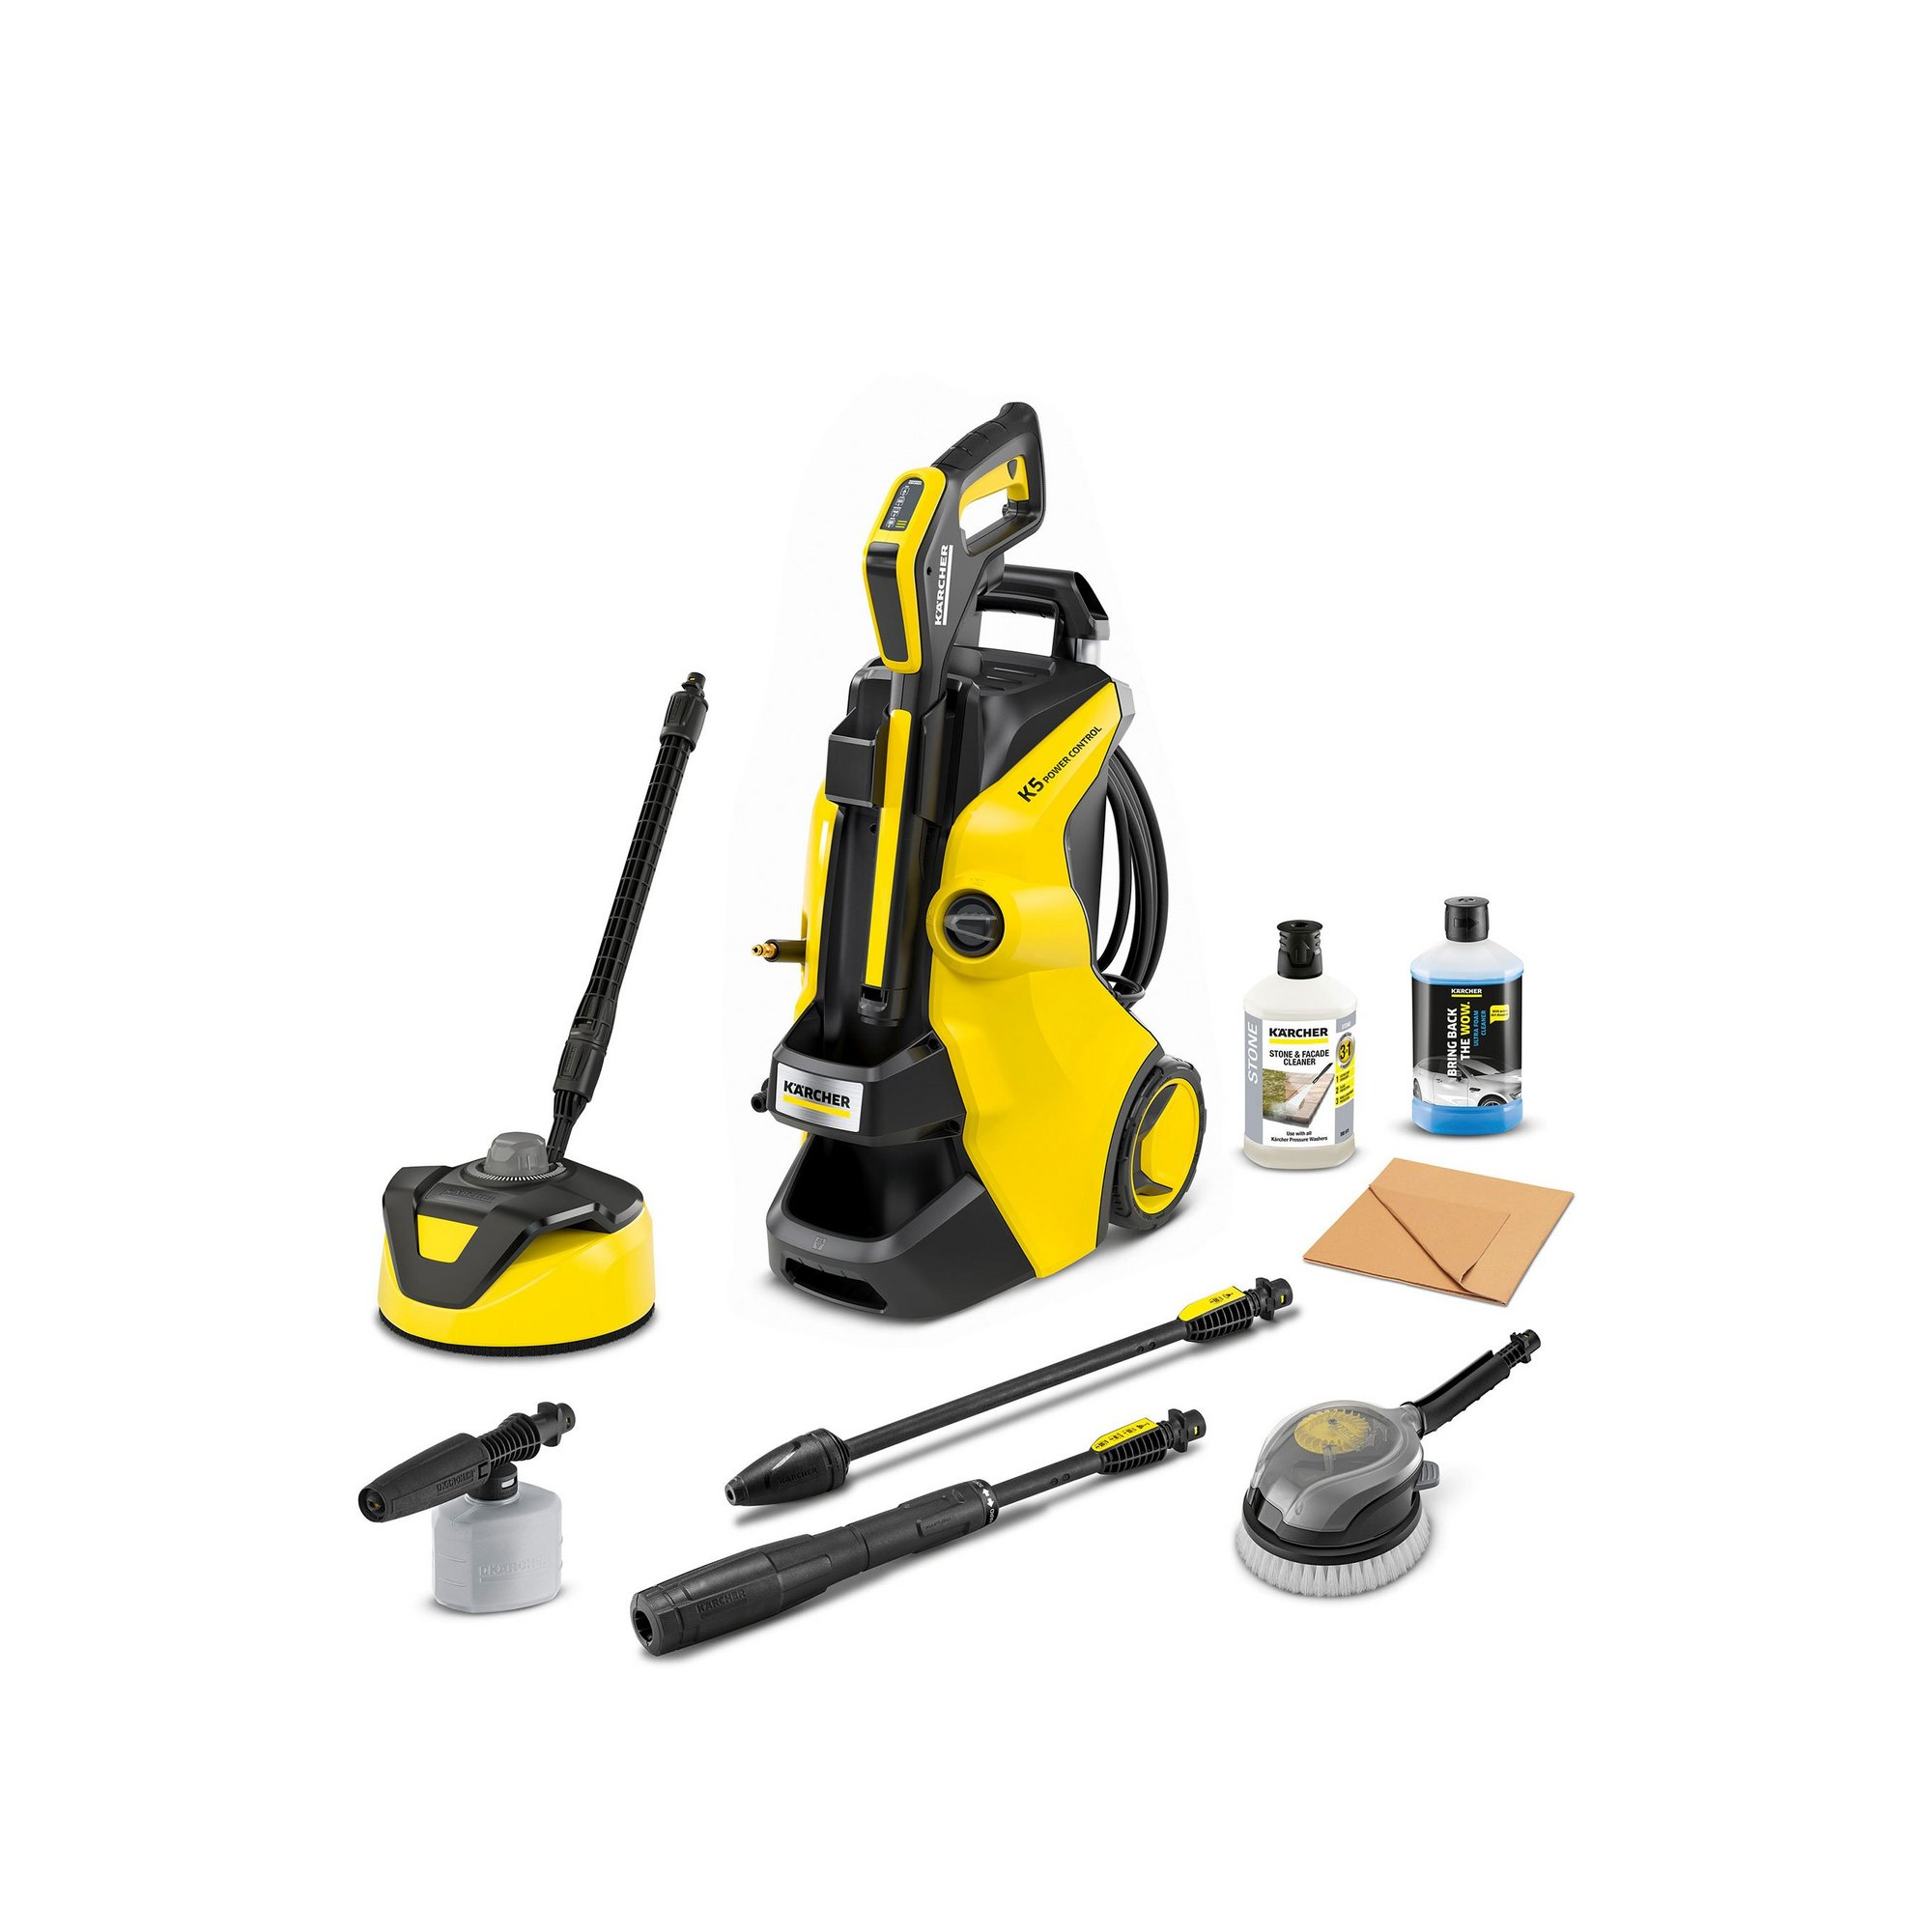 Image of Karcher K5 Power Control Car and Home Pressure Washer